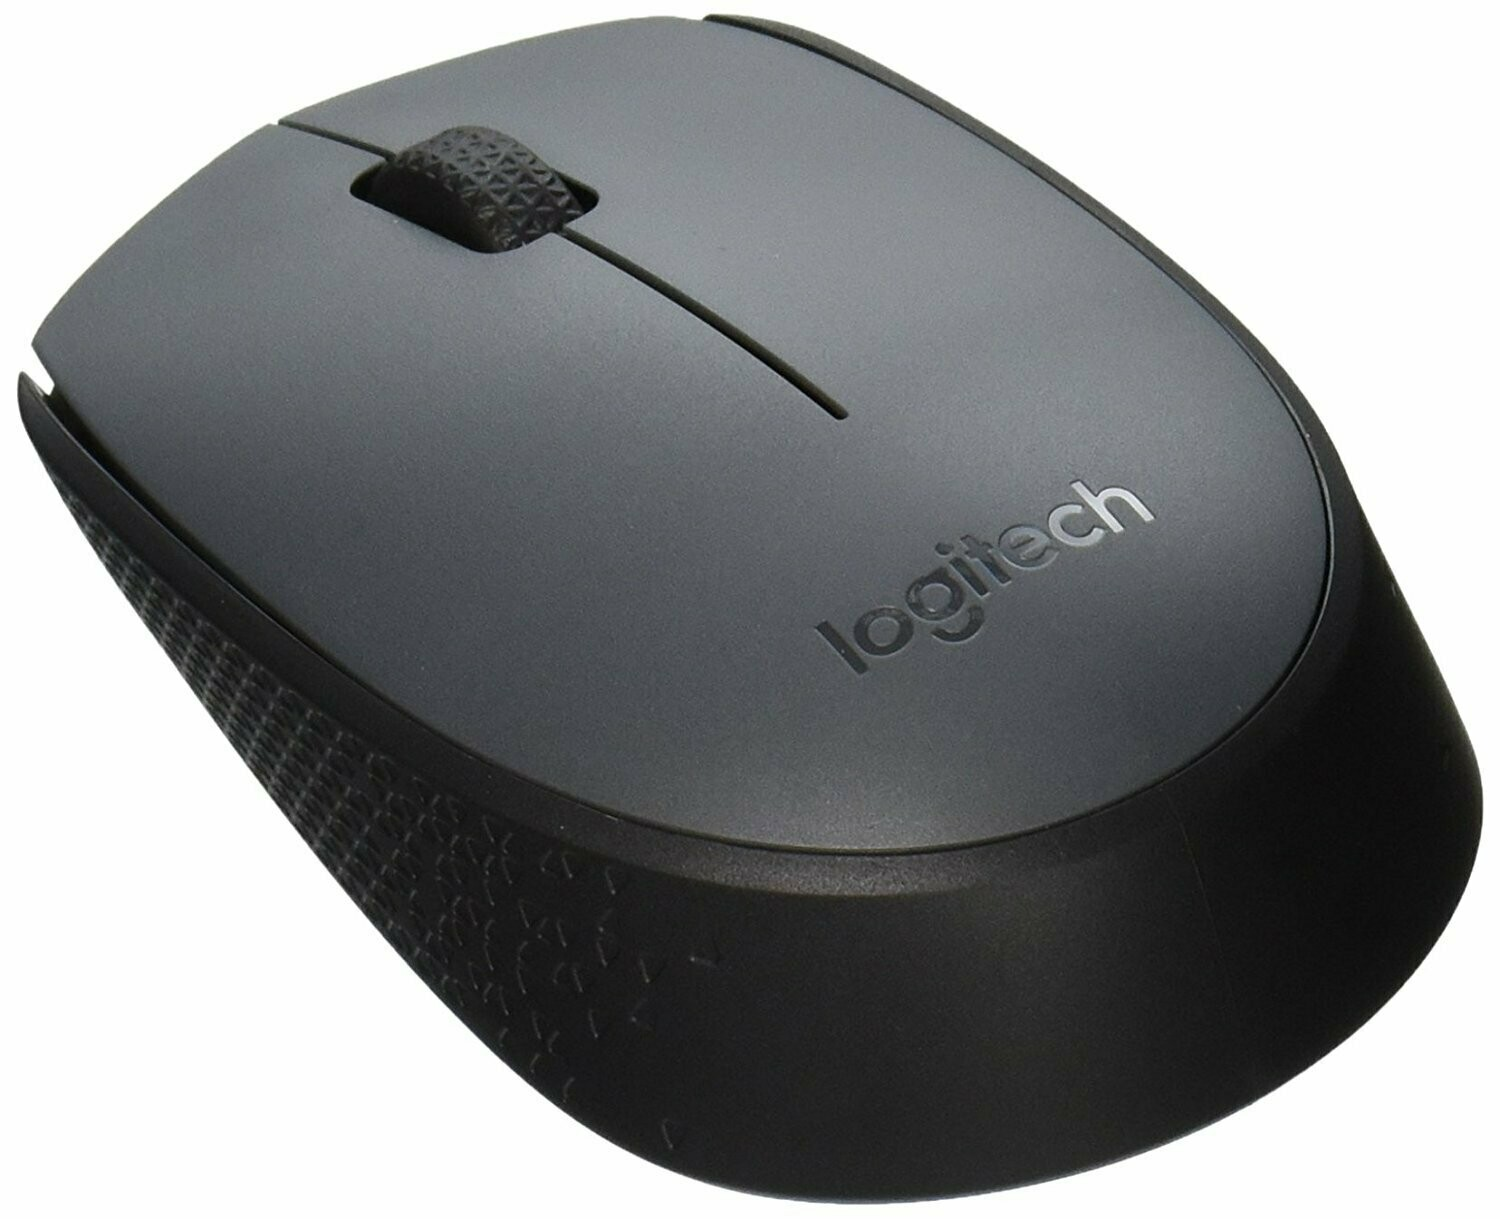 3a7ee965177 Logitech M170 Wireless Mouse, Rs.404